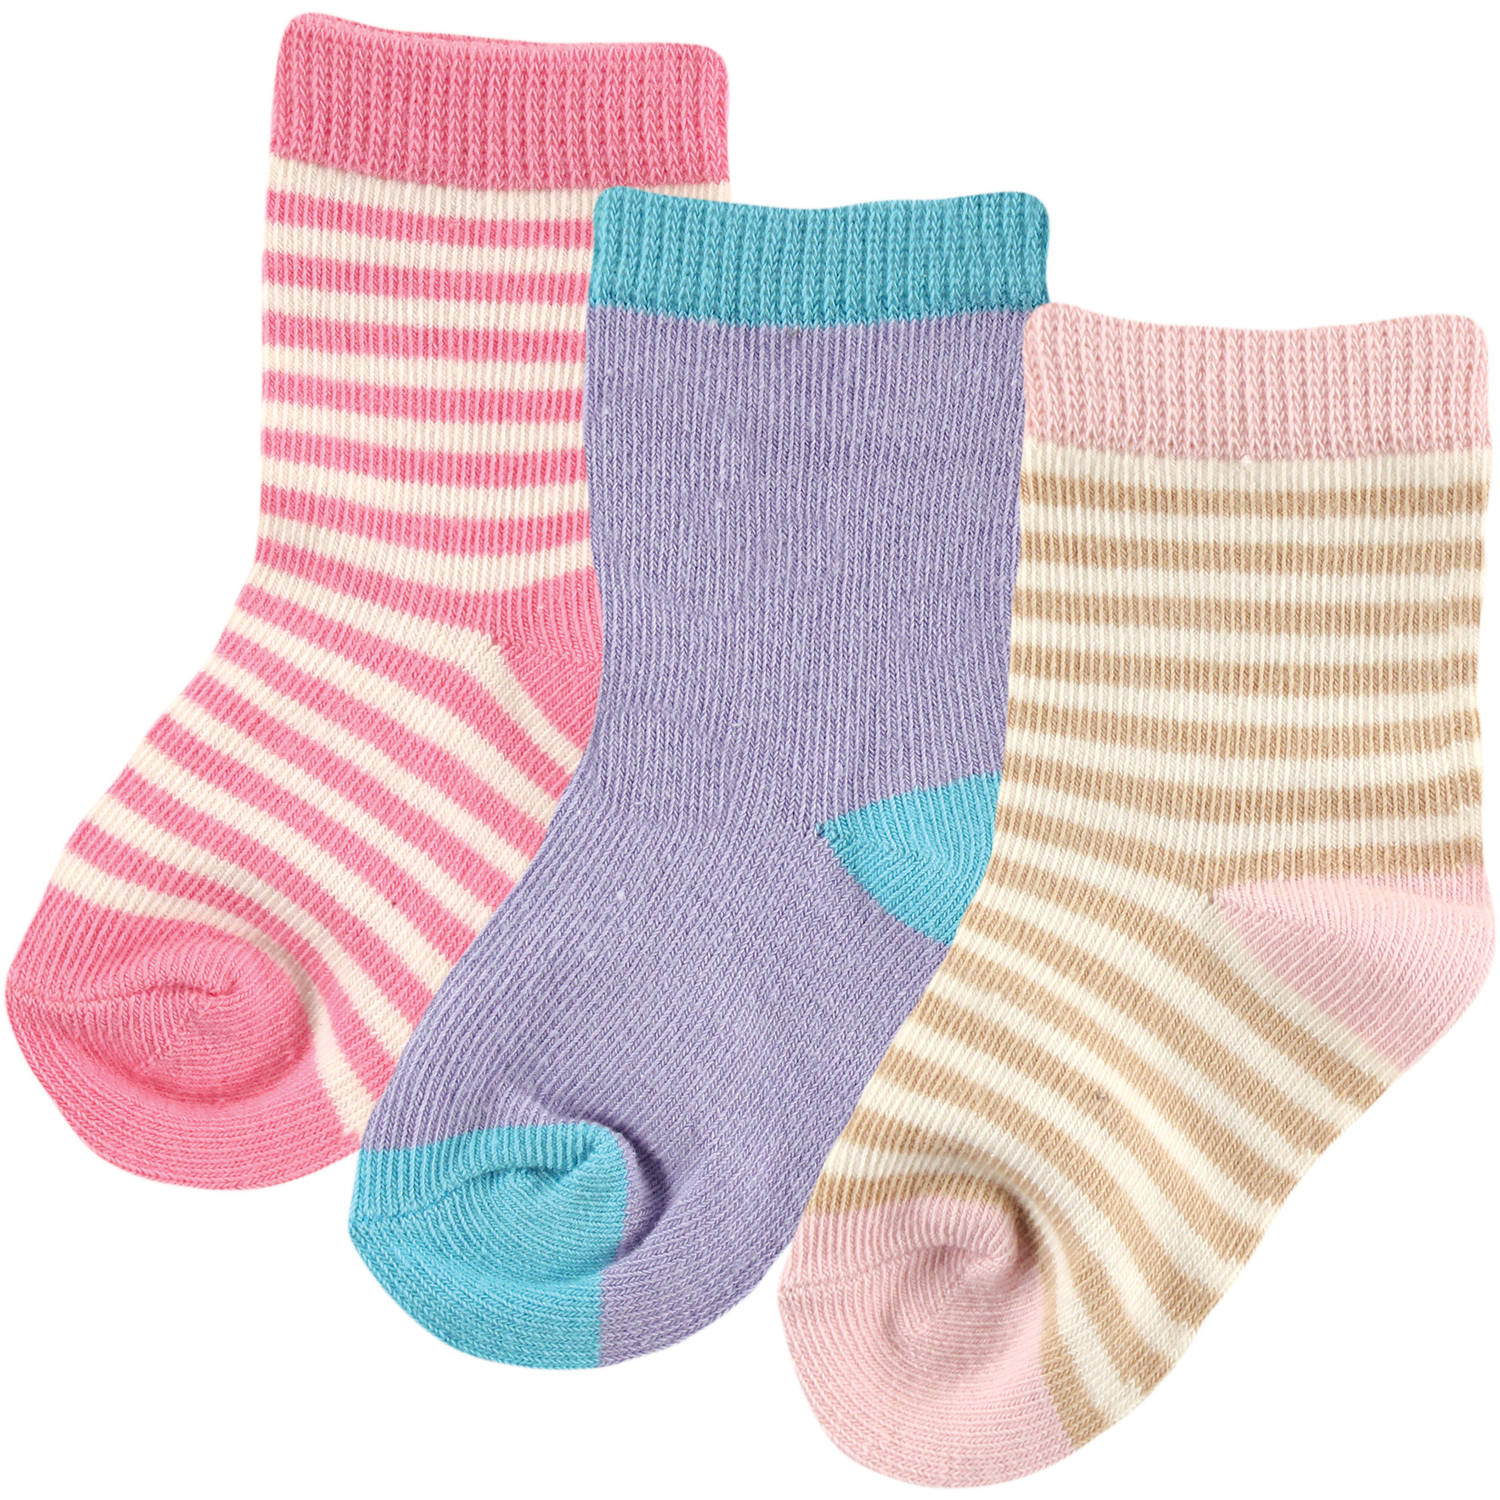 Touched By Nature 100% Organic Cotton Newborn Baby Clothes Girls Socks 3-Pack